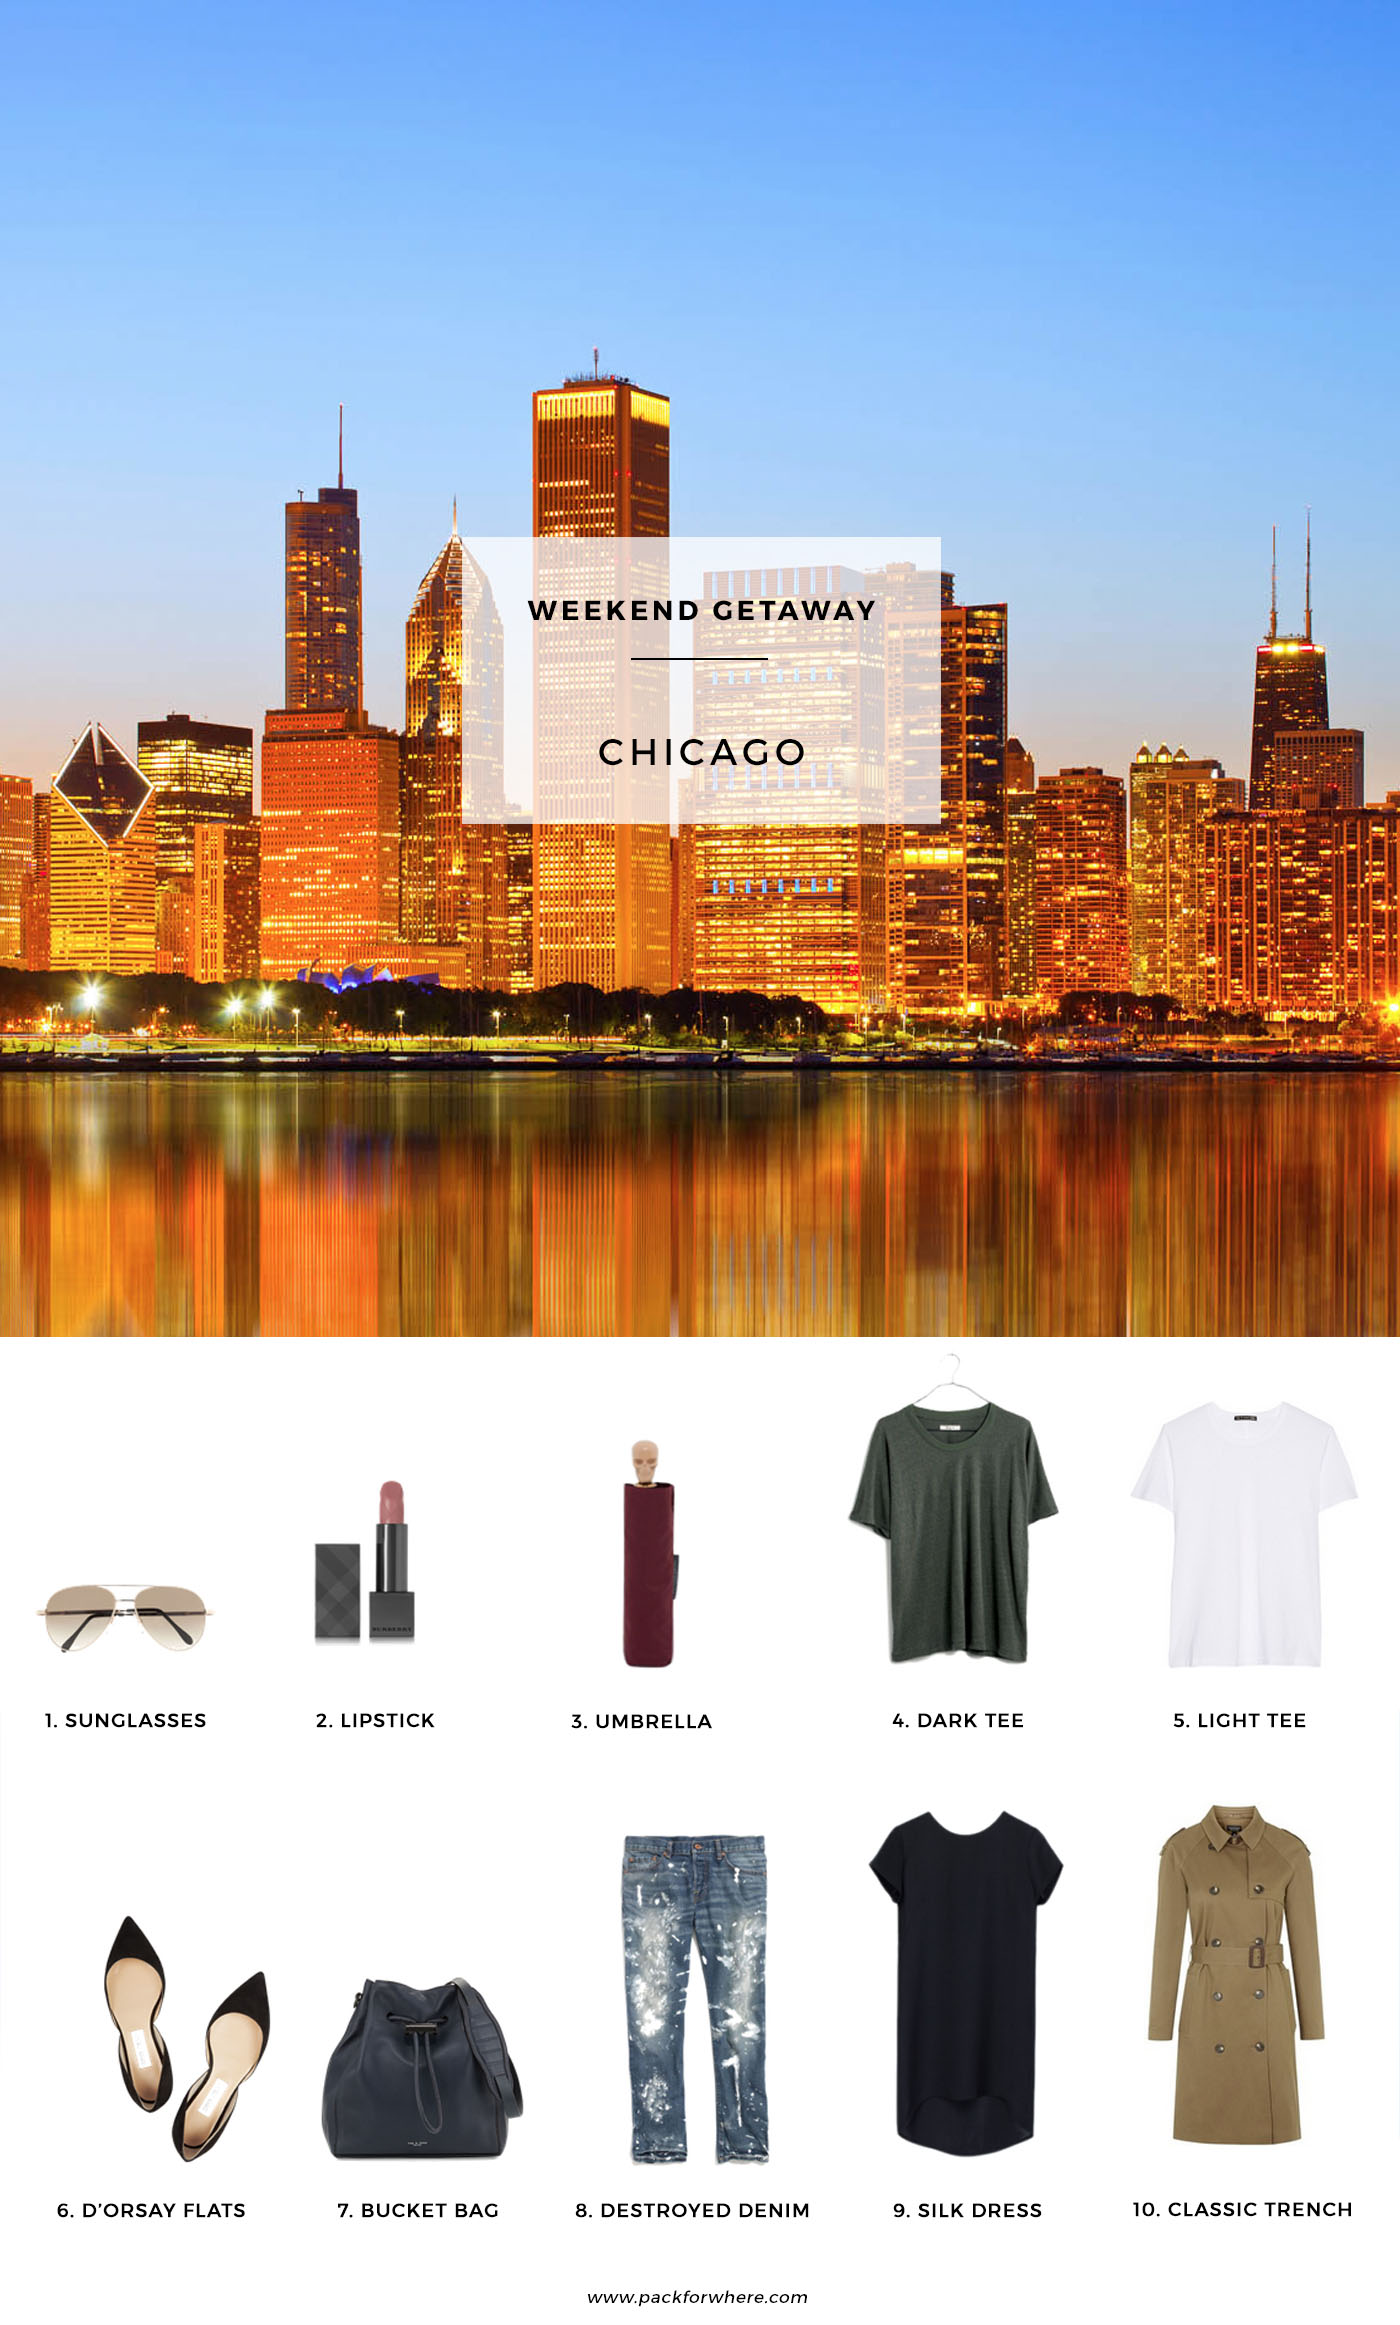 Pack for a Fall getaway to Chicago, 10 items, 5 outfits, 1 carry on. #travellight #packingtips #traveltips